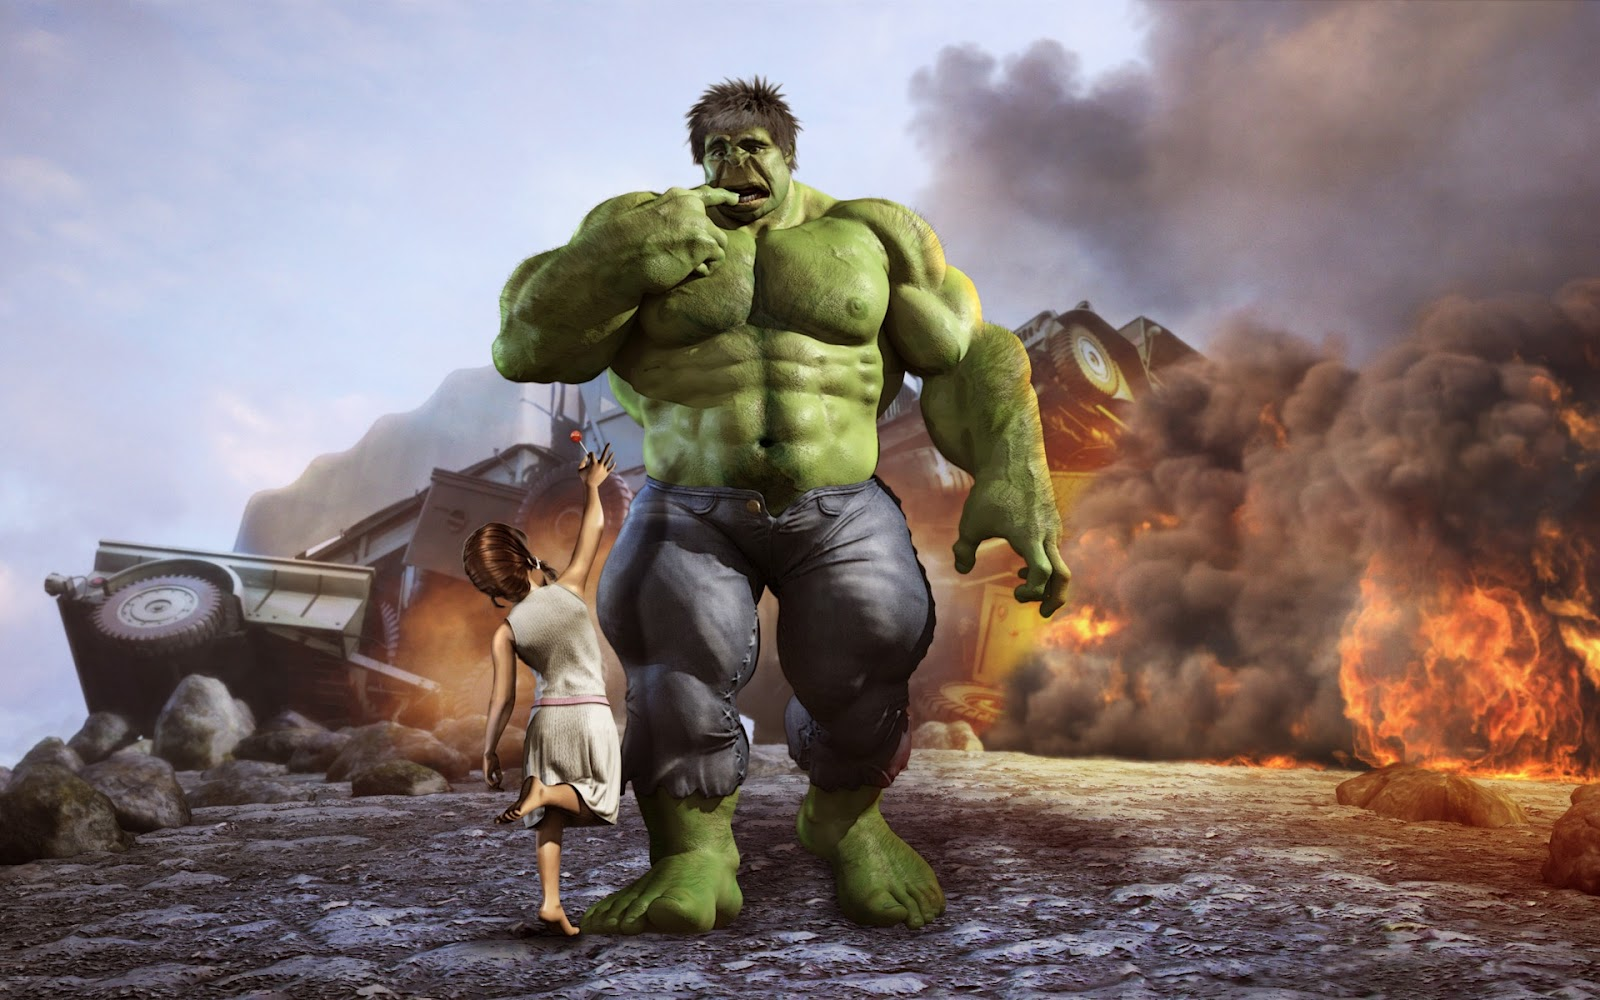 Hulk wallpaper  Download free awesome full HD wallpapers